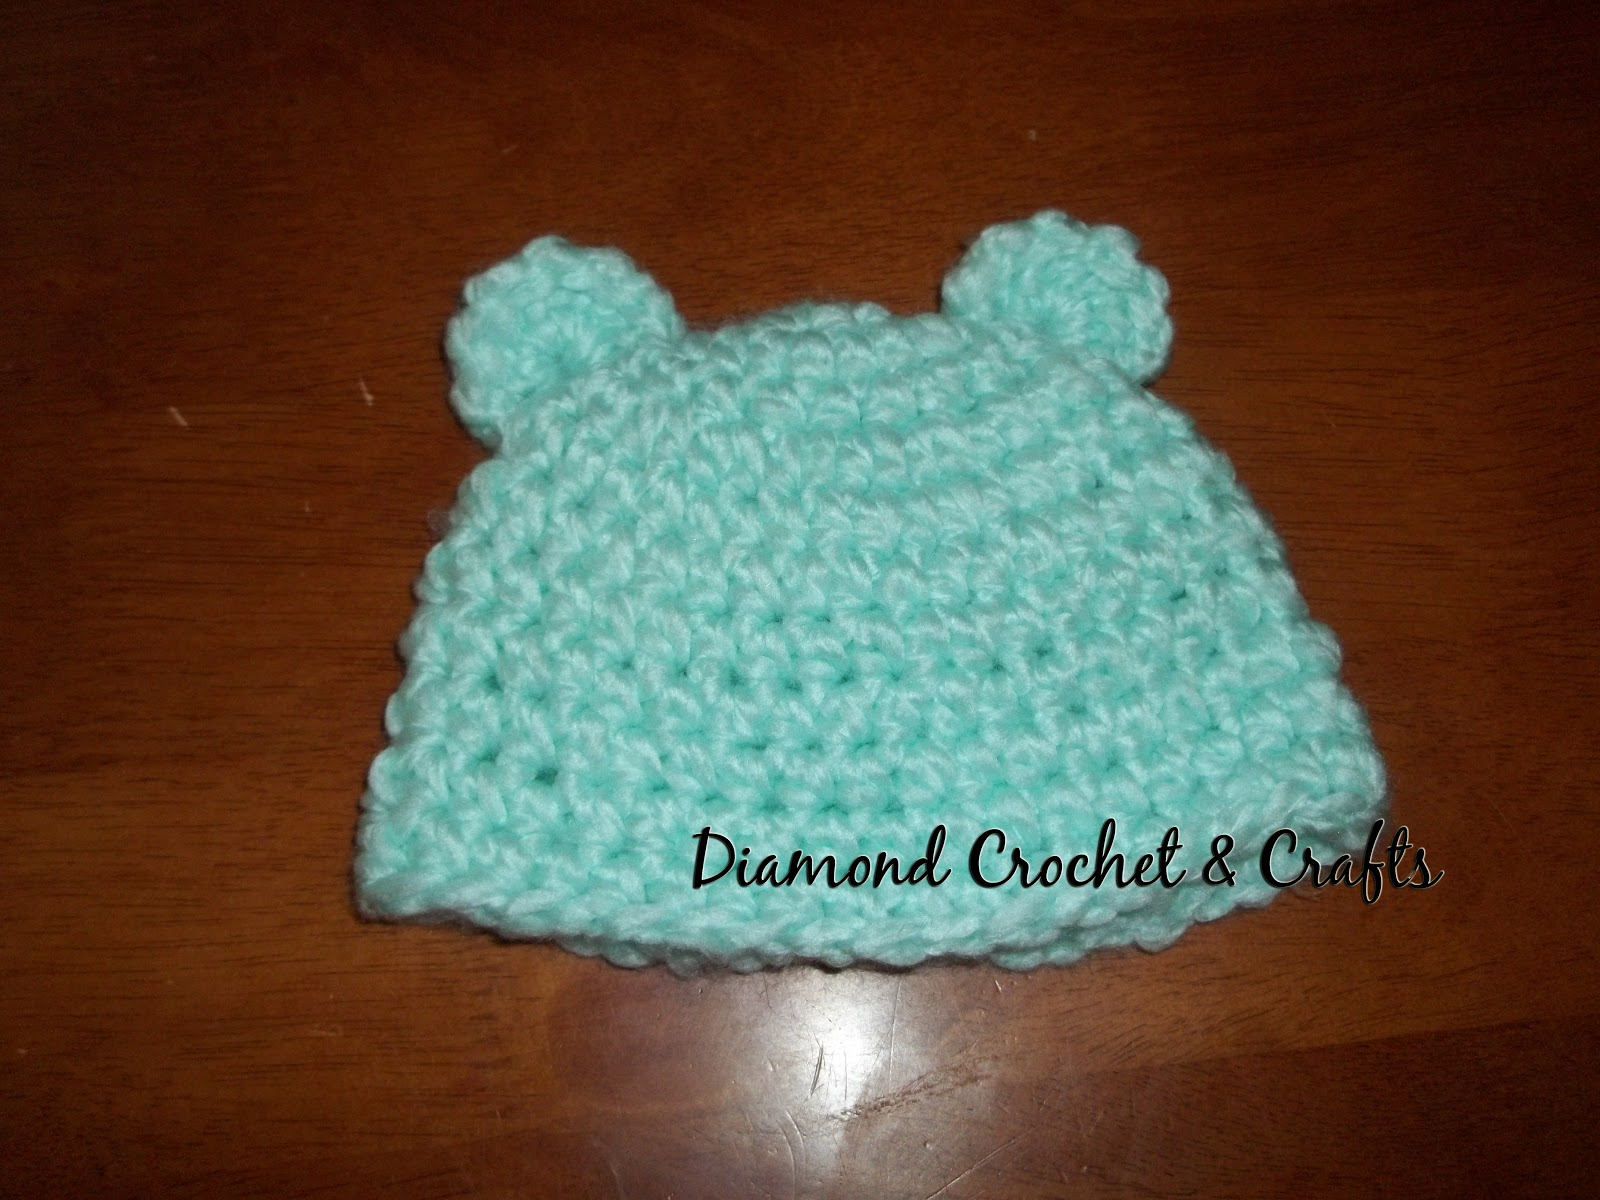 Crochet Baby Hat Patterns 0 3 Months : Diamond Rose Crafts: Fuzzy Bear Baby Beanie Pattern 0-3 Months